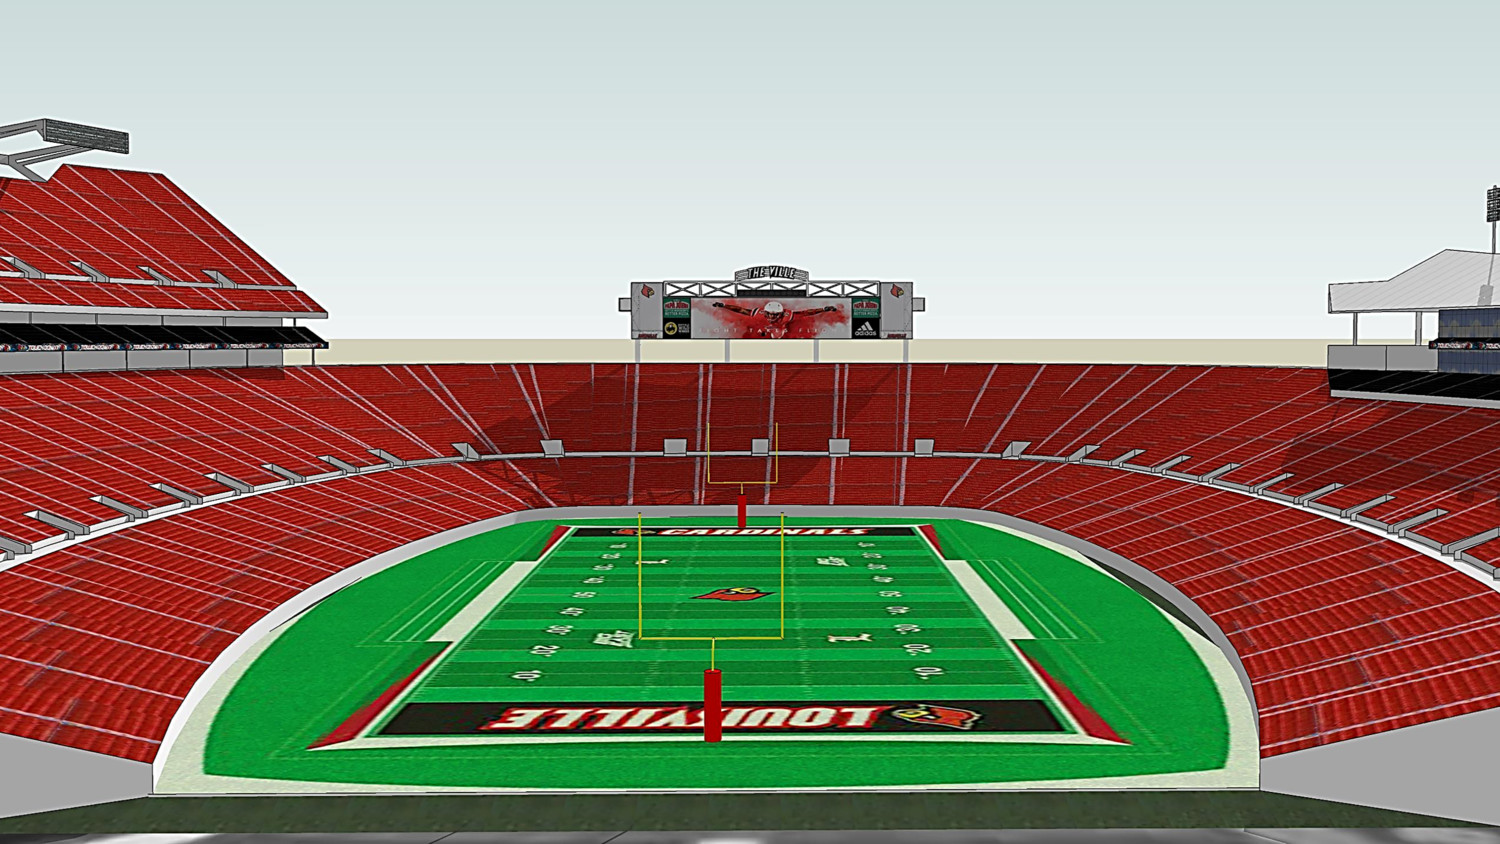 University of Louisville expands partnership with ANC to install new video displays at Papa John's Cardinal Stadium